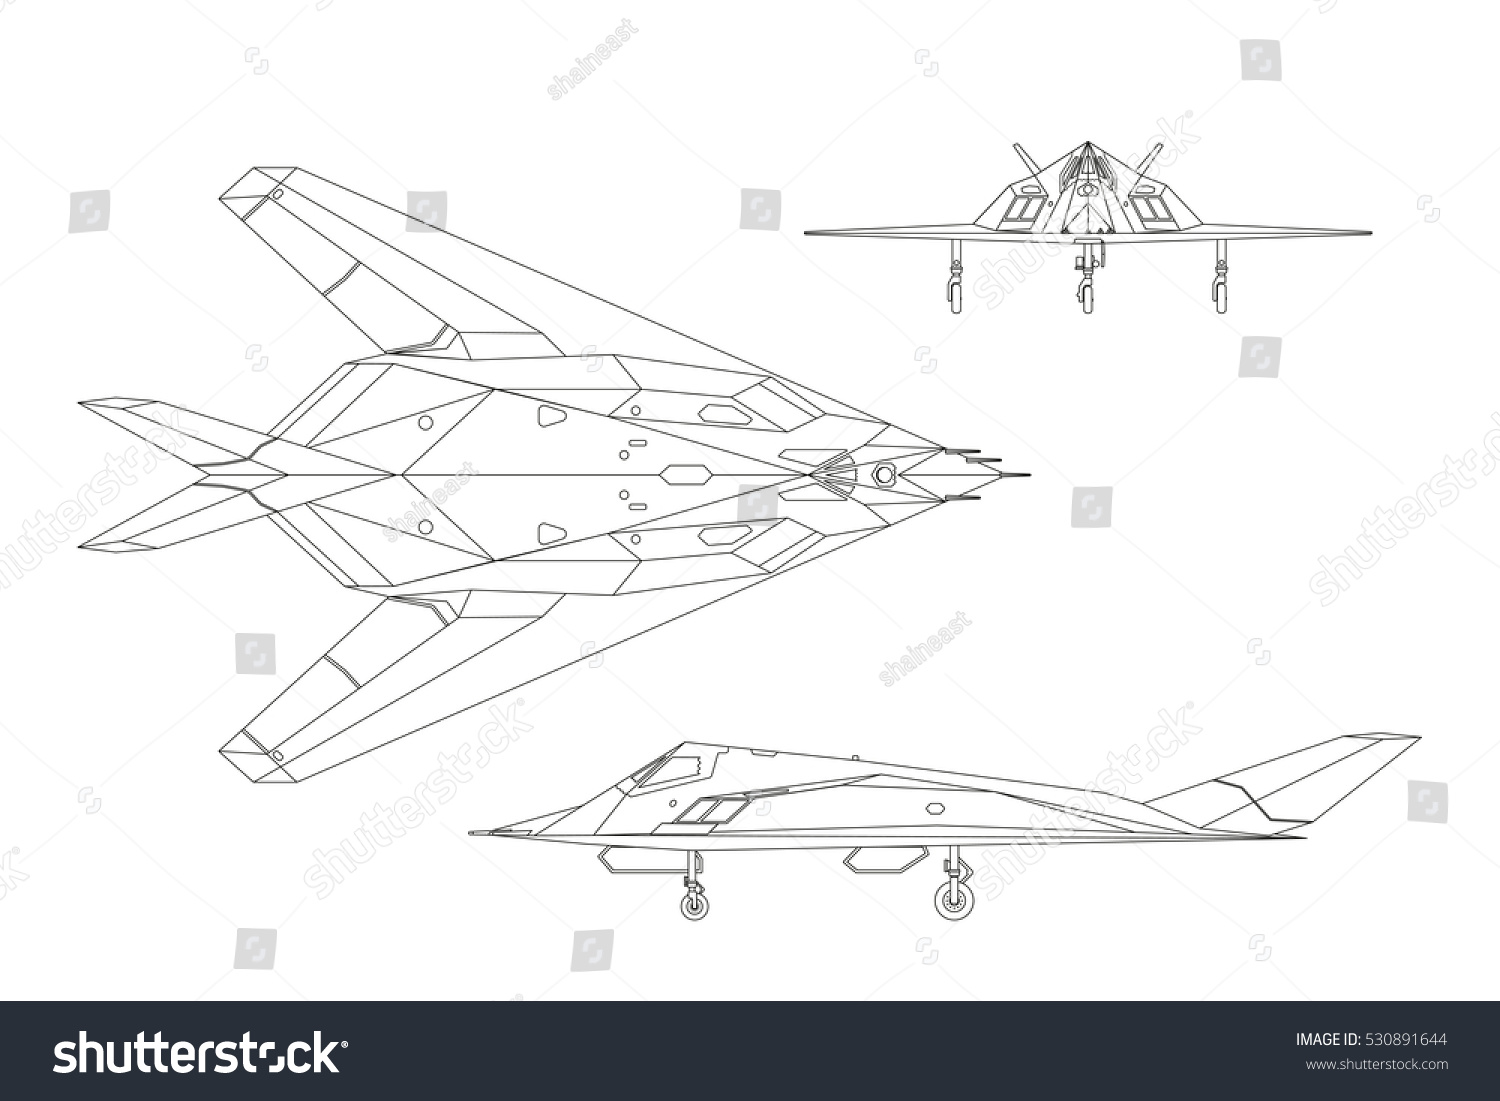 Contour Drawing Of War Plane Airplane Views Top Side